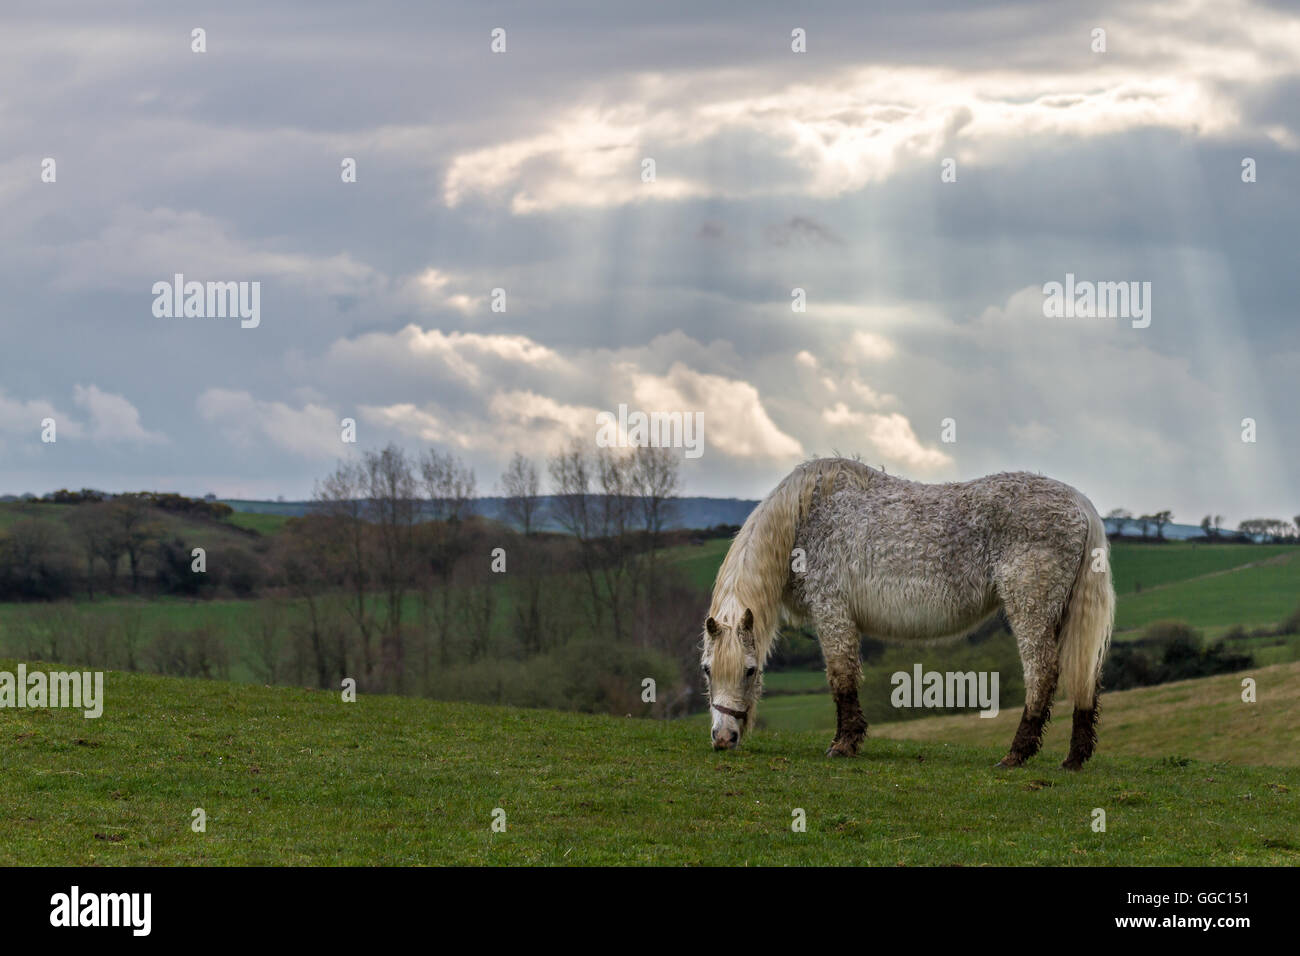 suns rays through clouds on wet horse and farm land - Stock Image